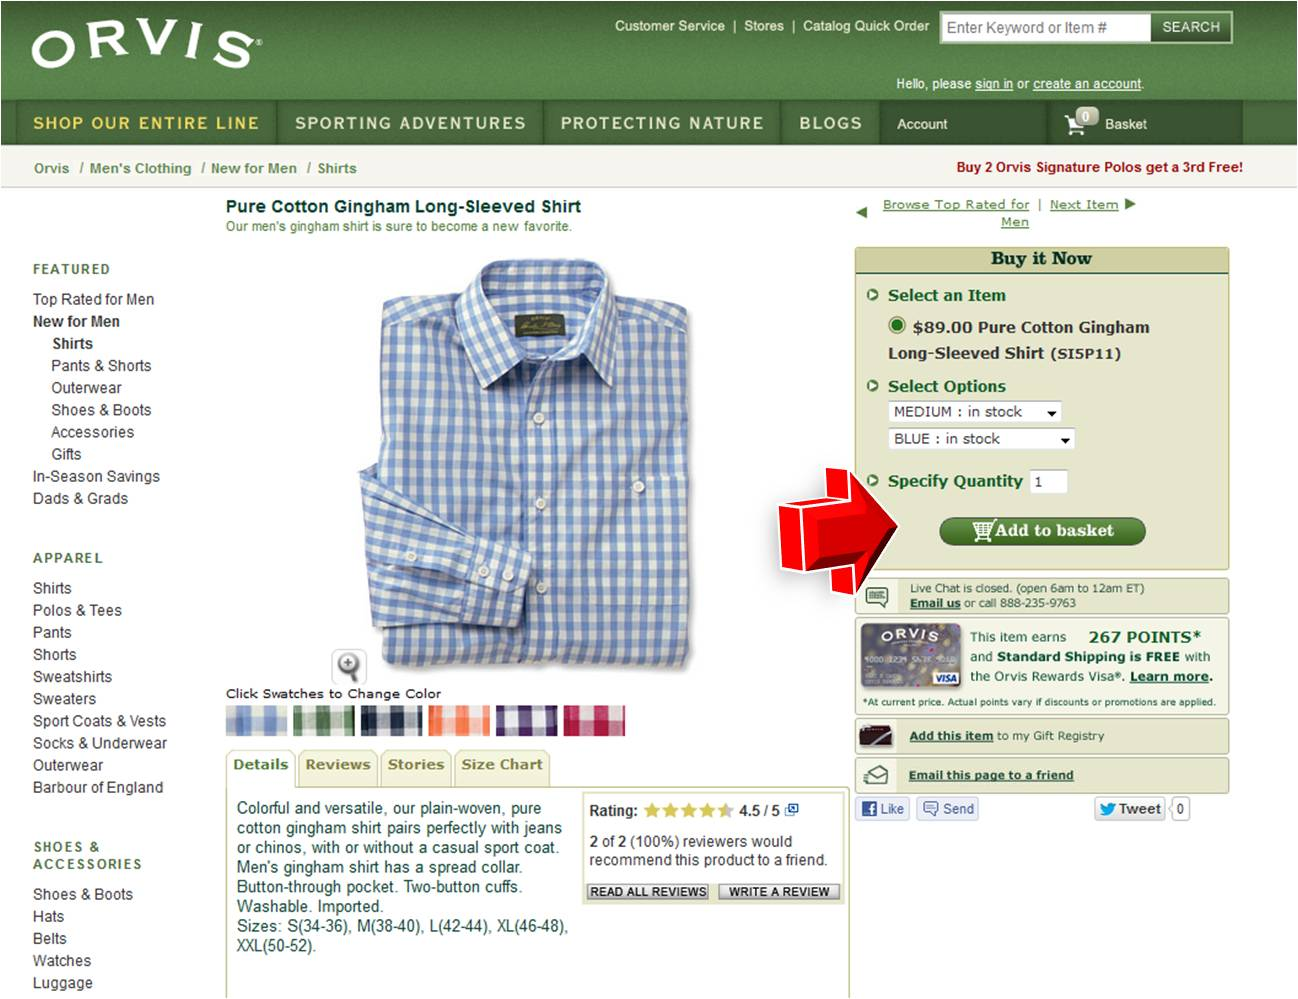 About ORVIS